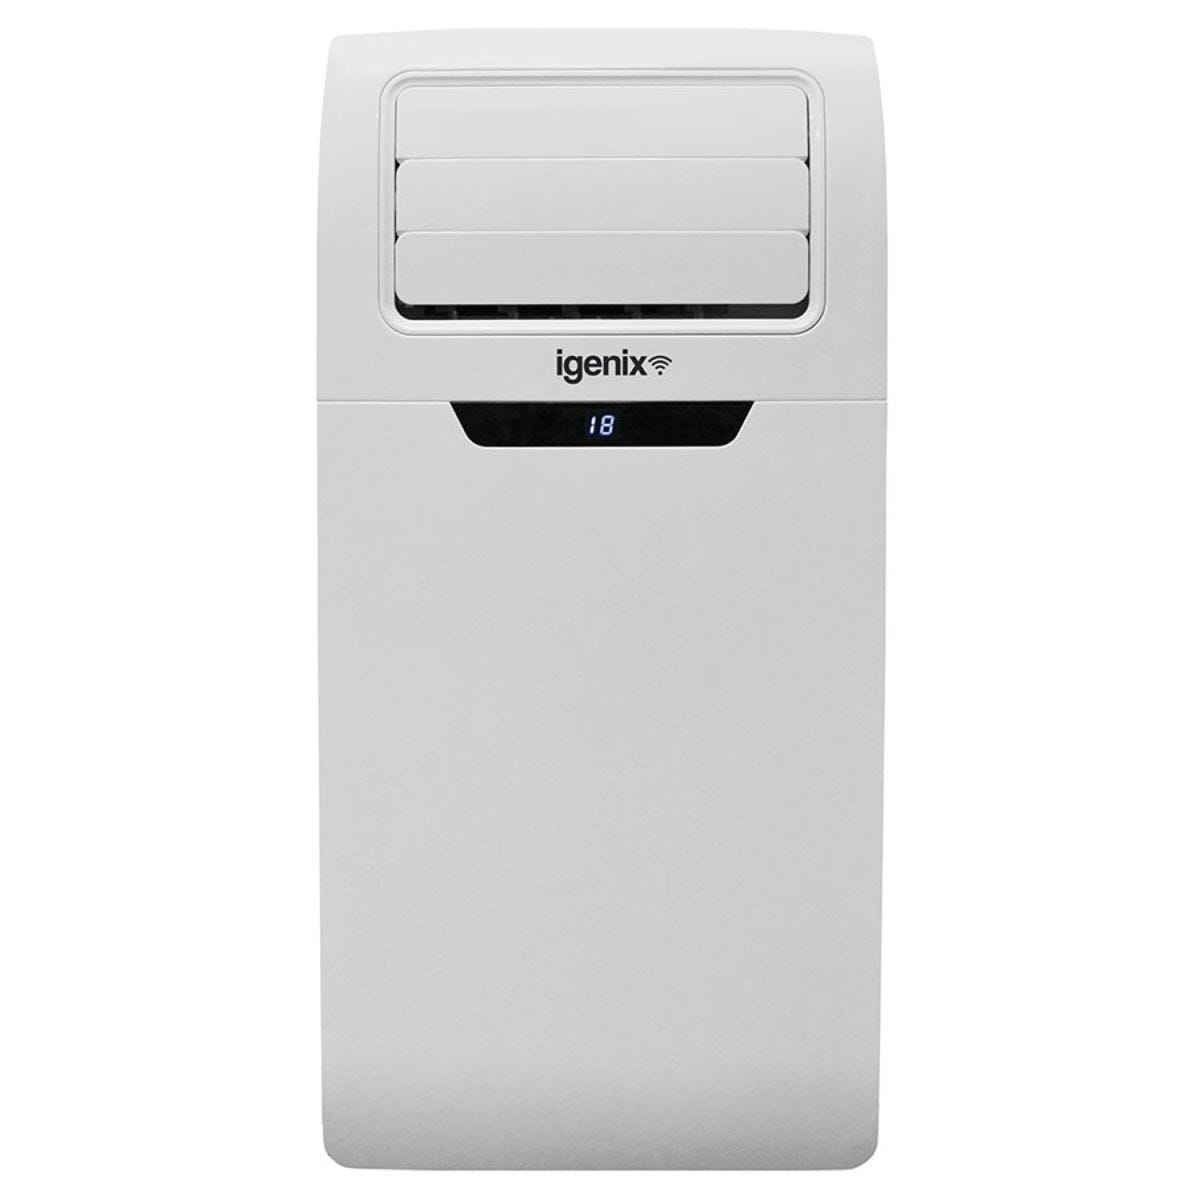 Igenix IG9901WIFI 9000BTU 3-in-1 Cooling, Fan and Dehumidifier Smart Home Portable Air Conditioner with WiFi - White